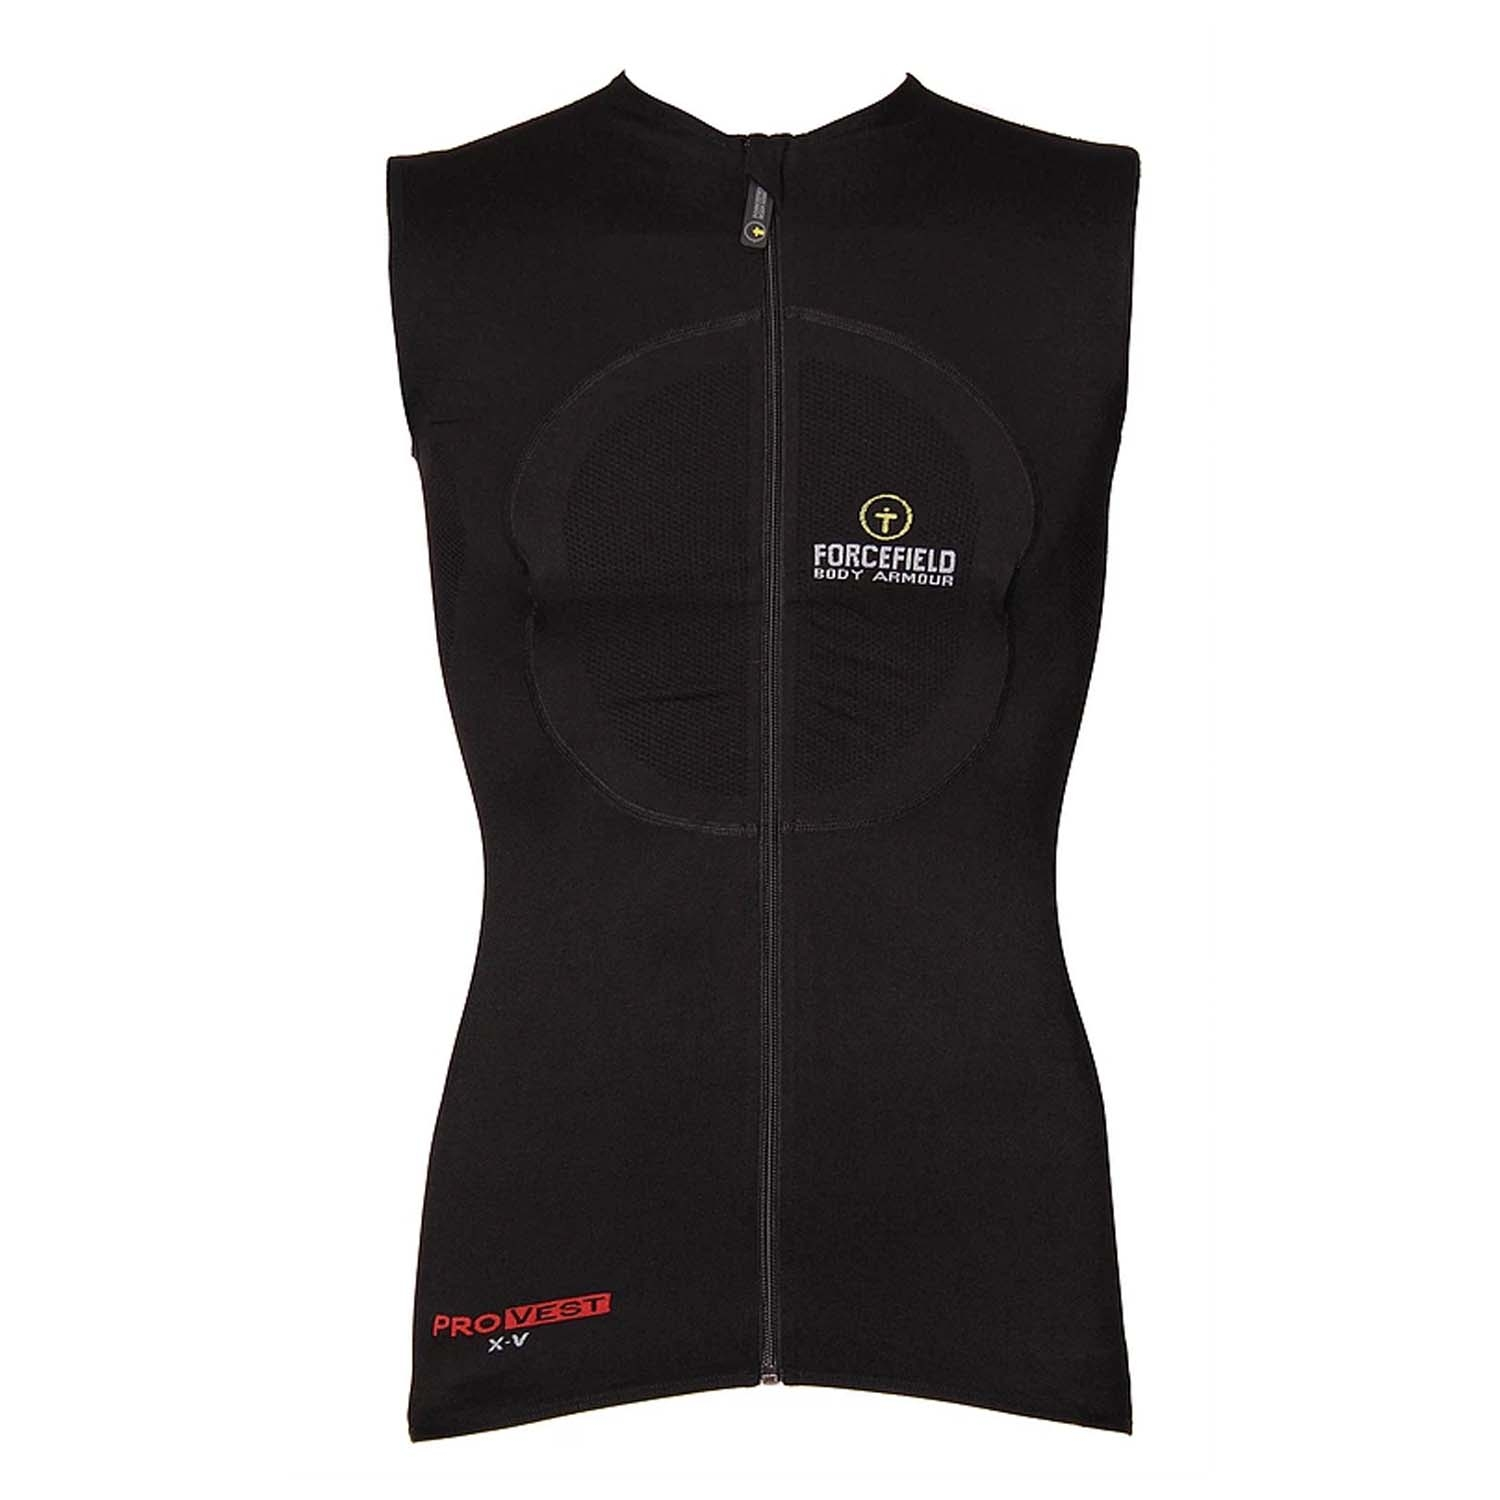 Forcefield Winter Pro Vest XV-1 2020